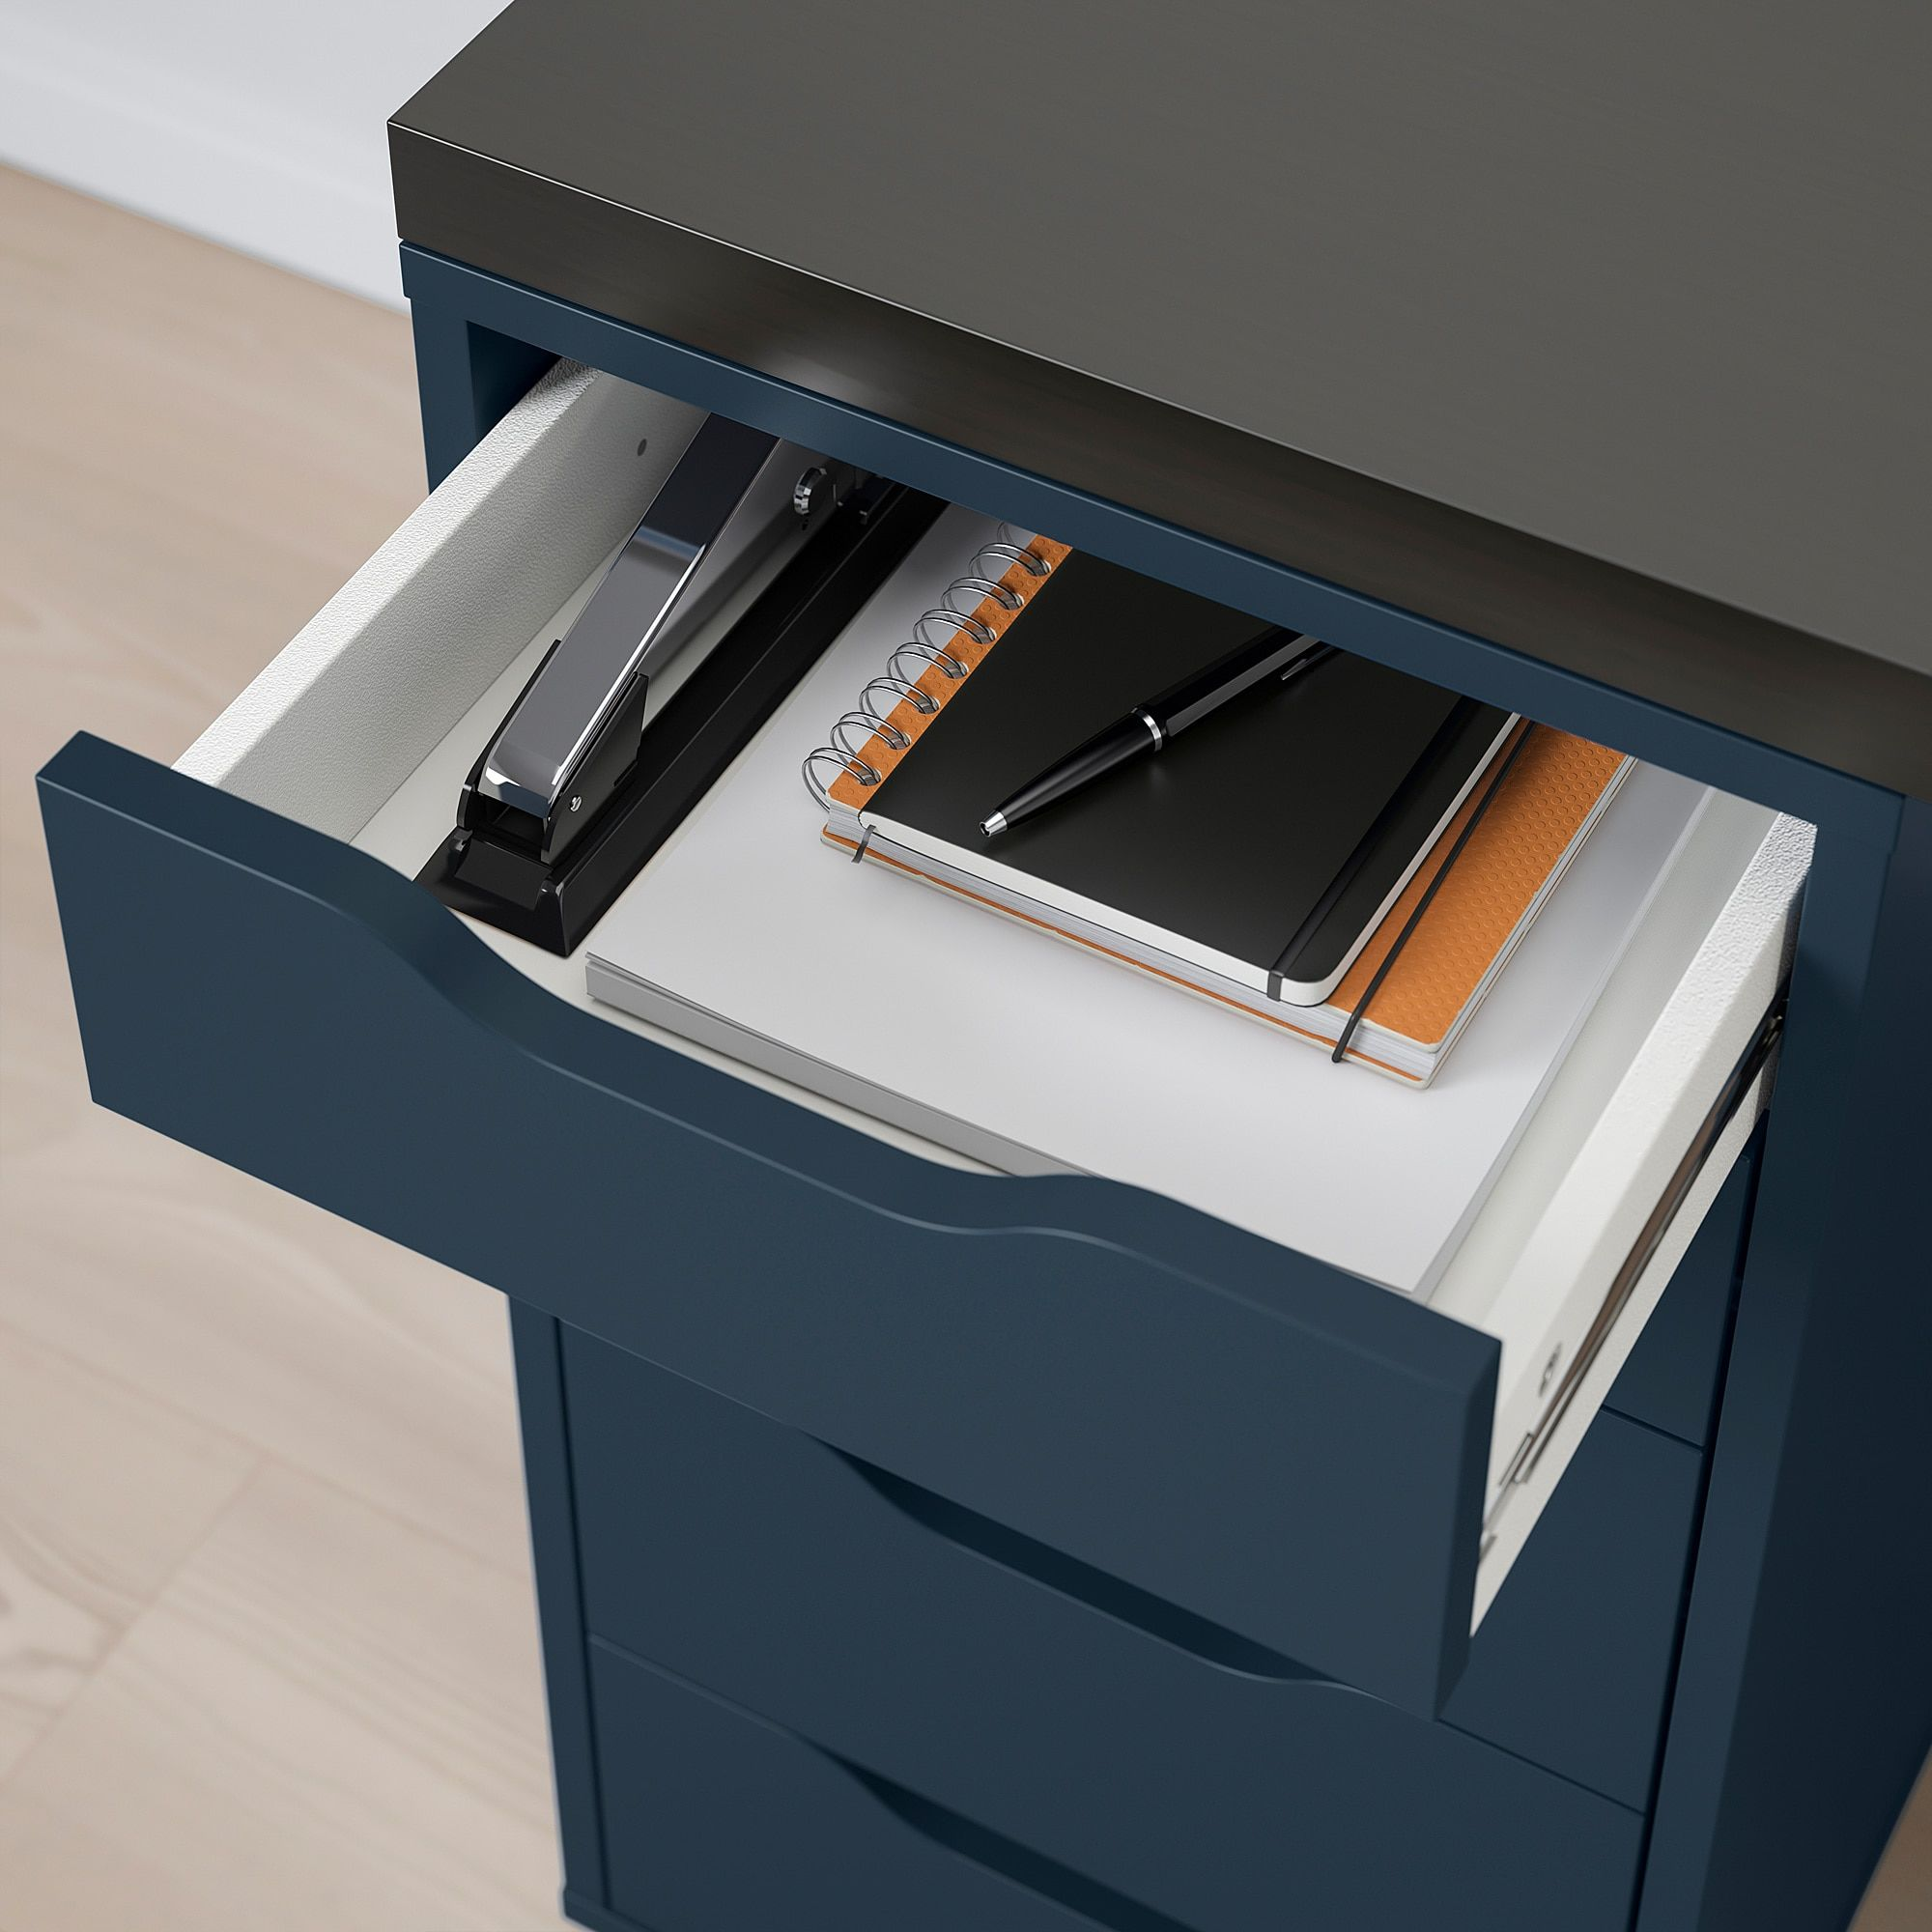 Linnmon Alex Table Black Brown Blue 59x29 1 2 Buy Online Or In Store Ikea Ikea Drawer Unit Linnmon Table Top